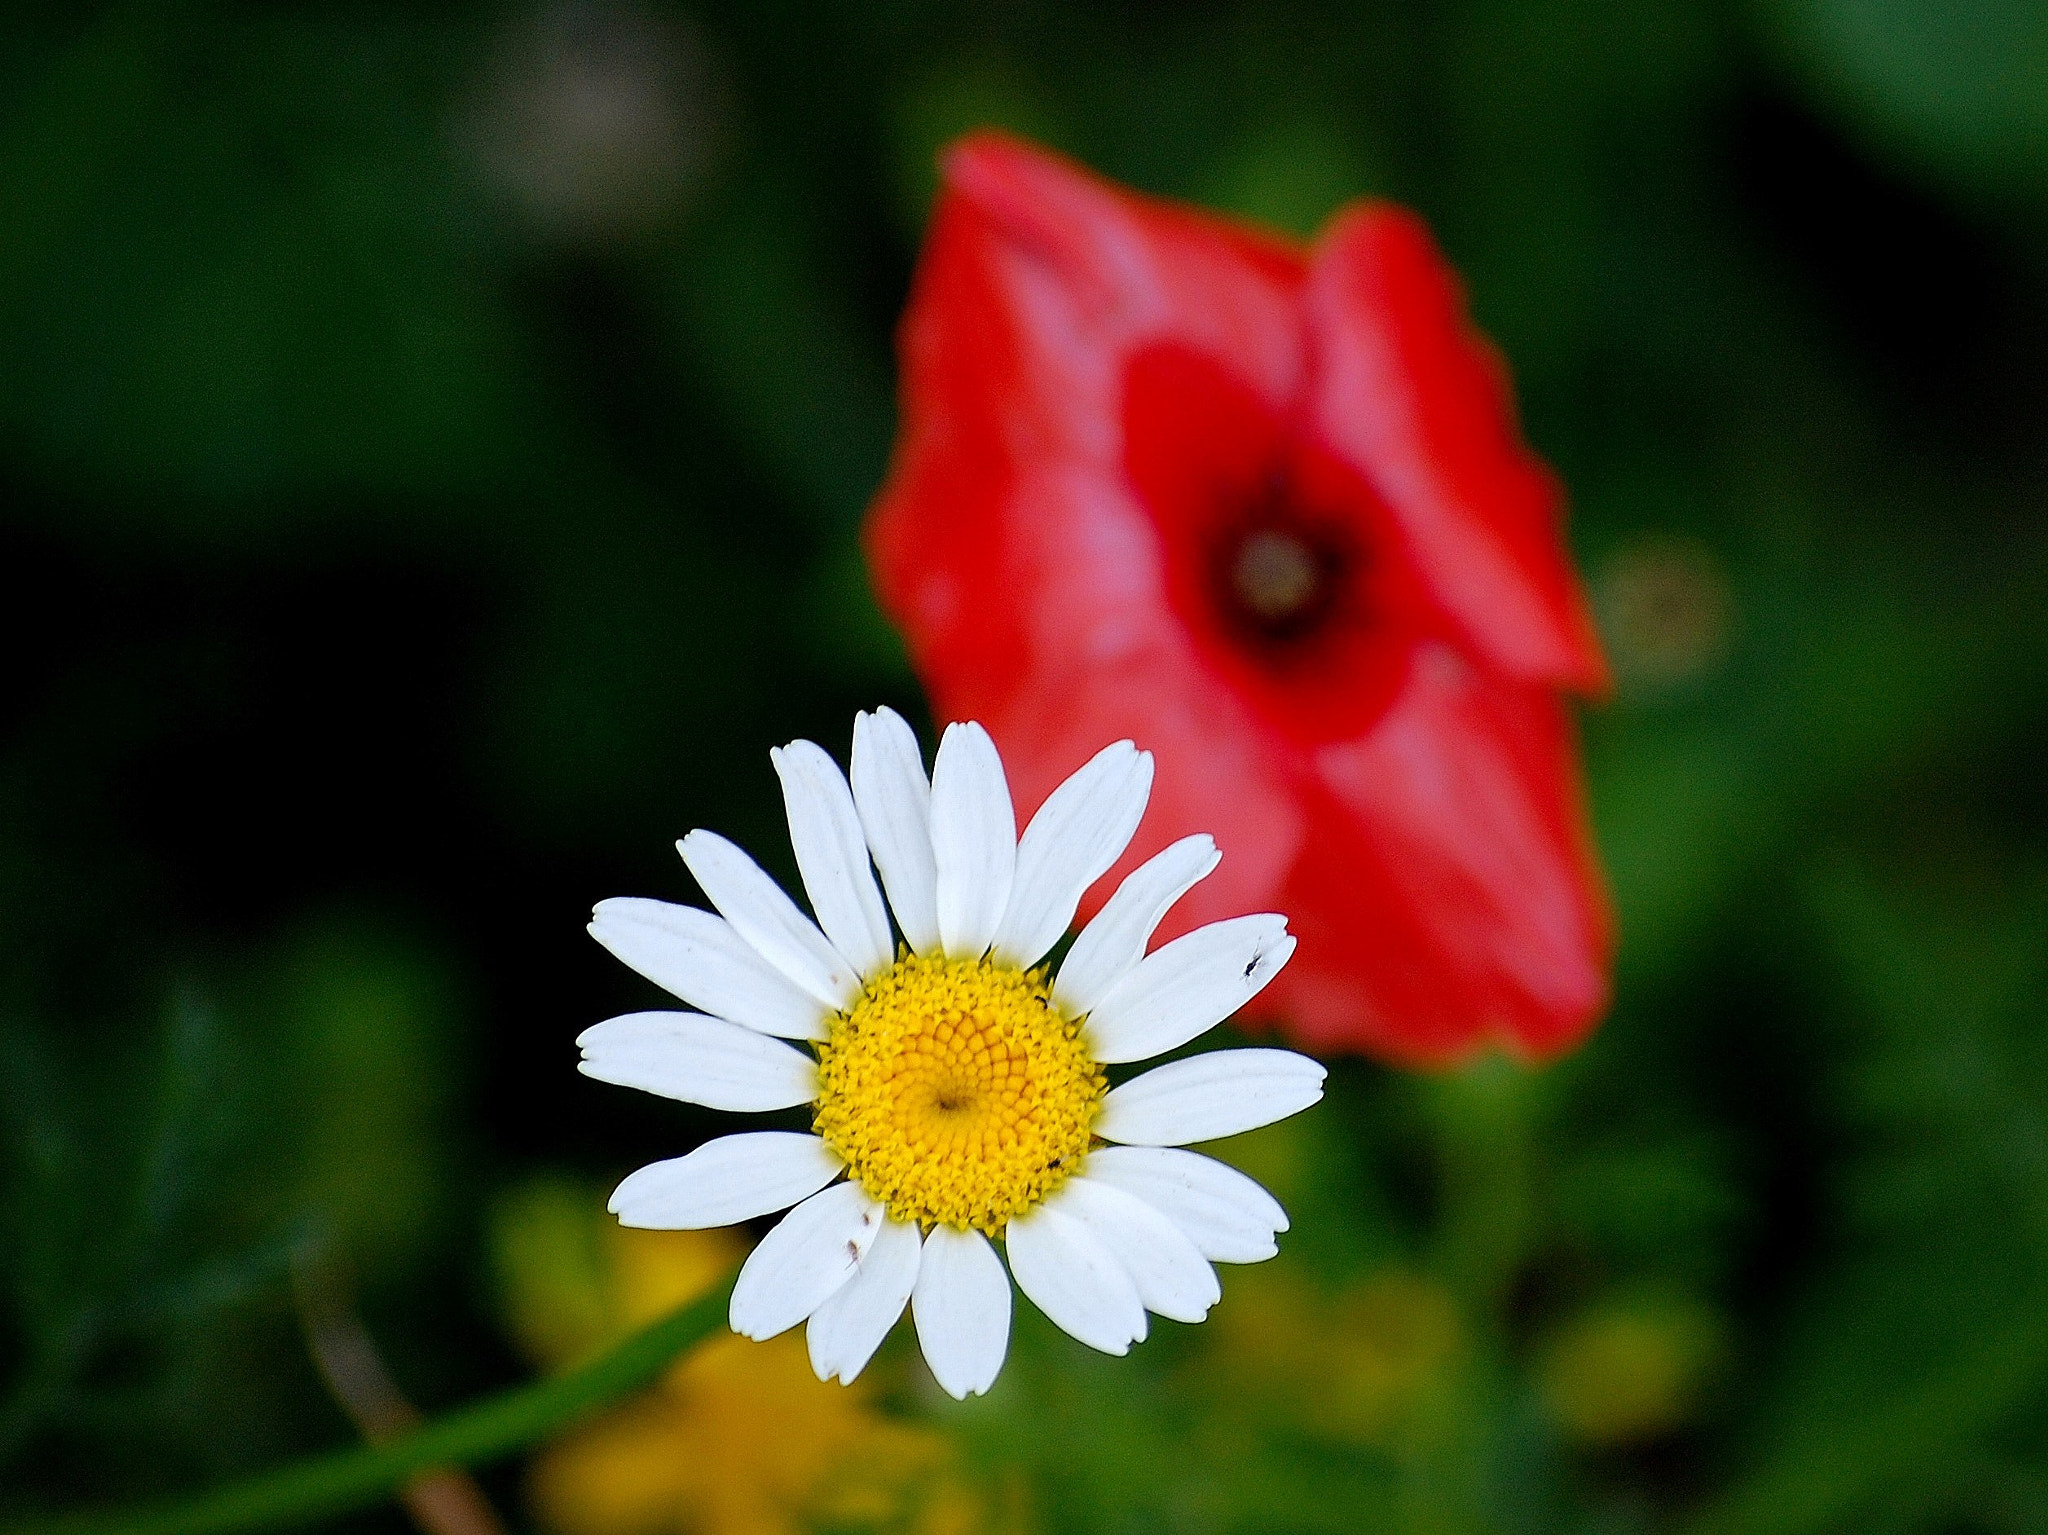 Photograph white, yellow, red and green by Andrea Macherelli Bianchini on 500px